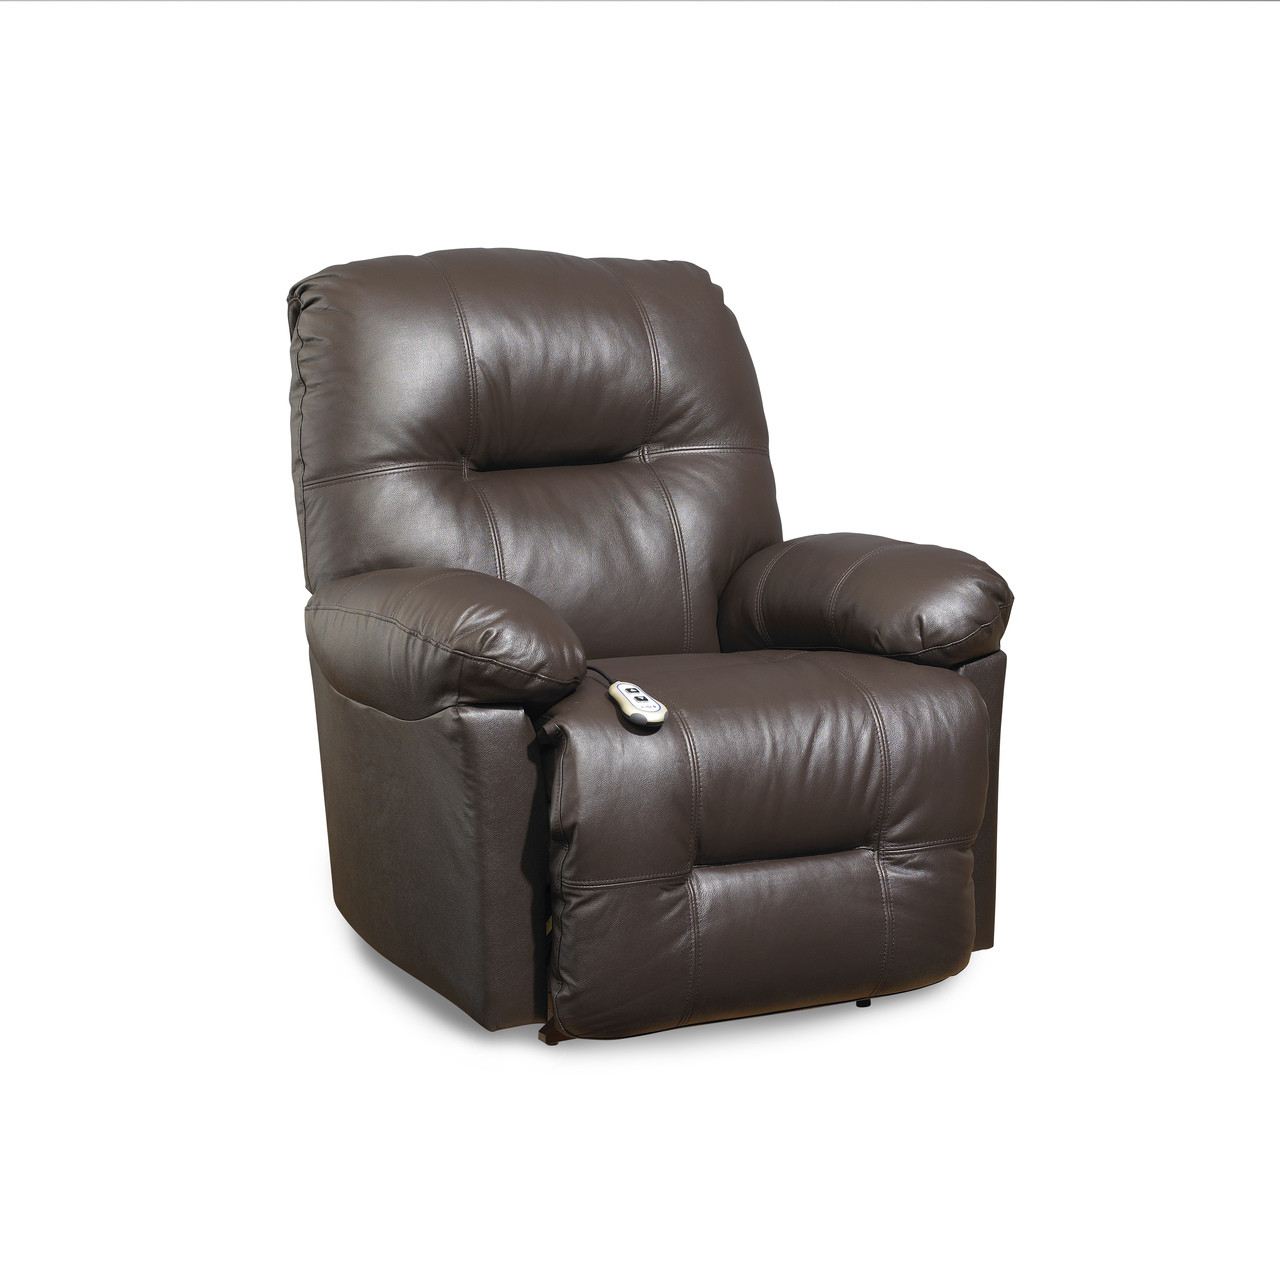 The Zaynah Casual Rocker Recliner Sold At Rose Brothers Furniture Serving Wilmington And